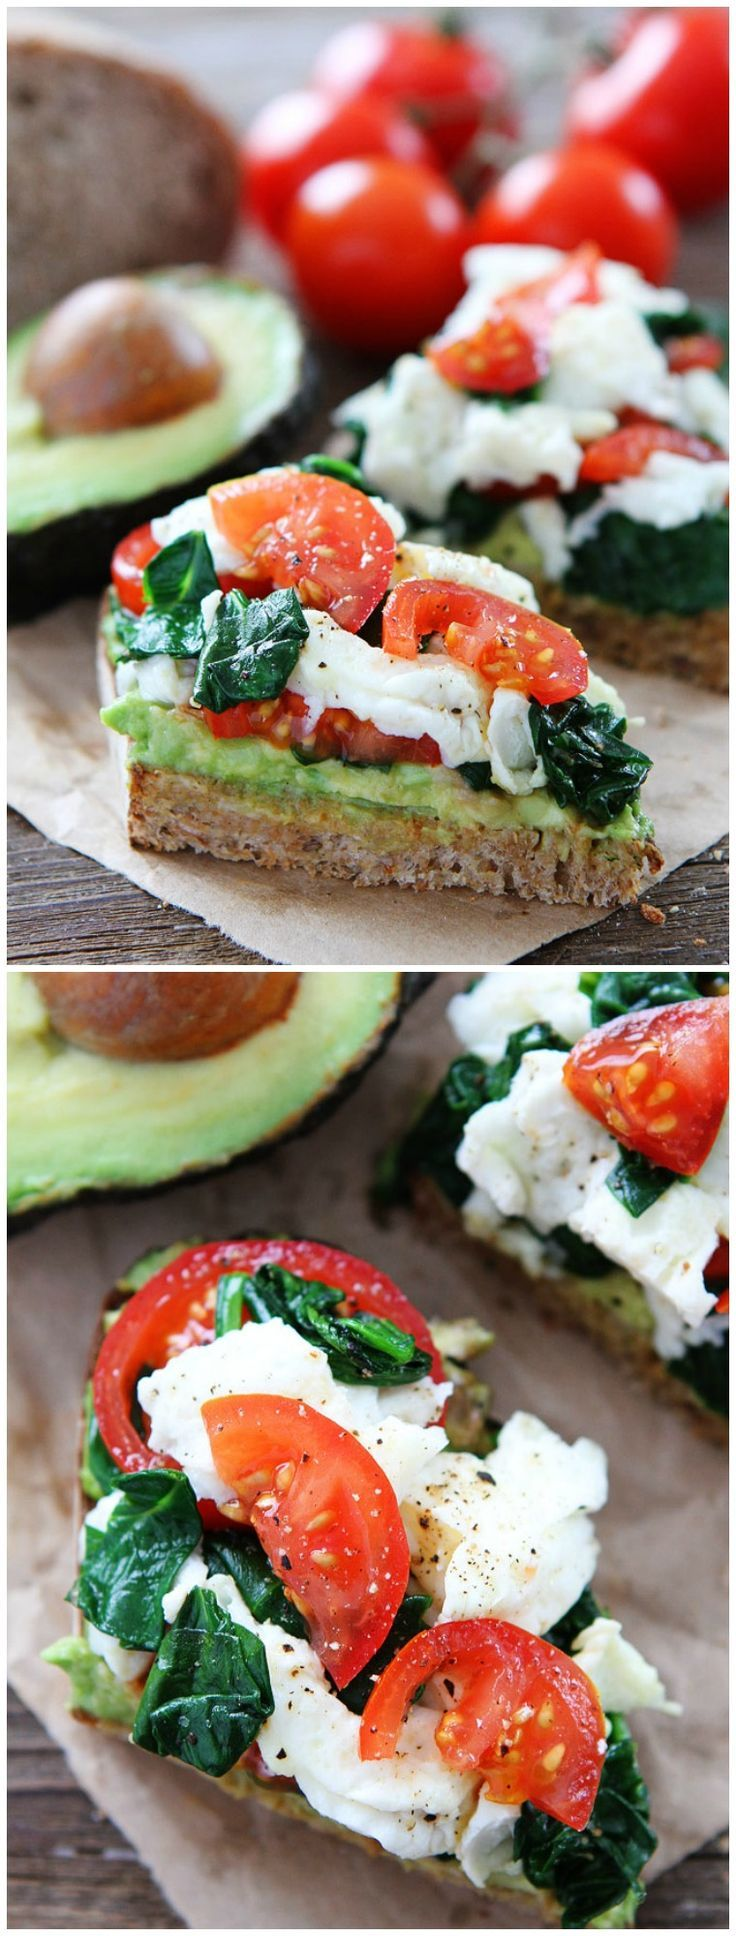 Avocado Toast with Eggs, Spinach, and Tomatoes Recipe on www.twopeasandtheirpod.com This easy and healthy recipe is great for breakfast, lunch, dinner, or snack time!